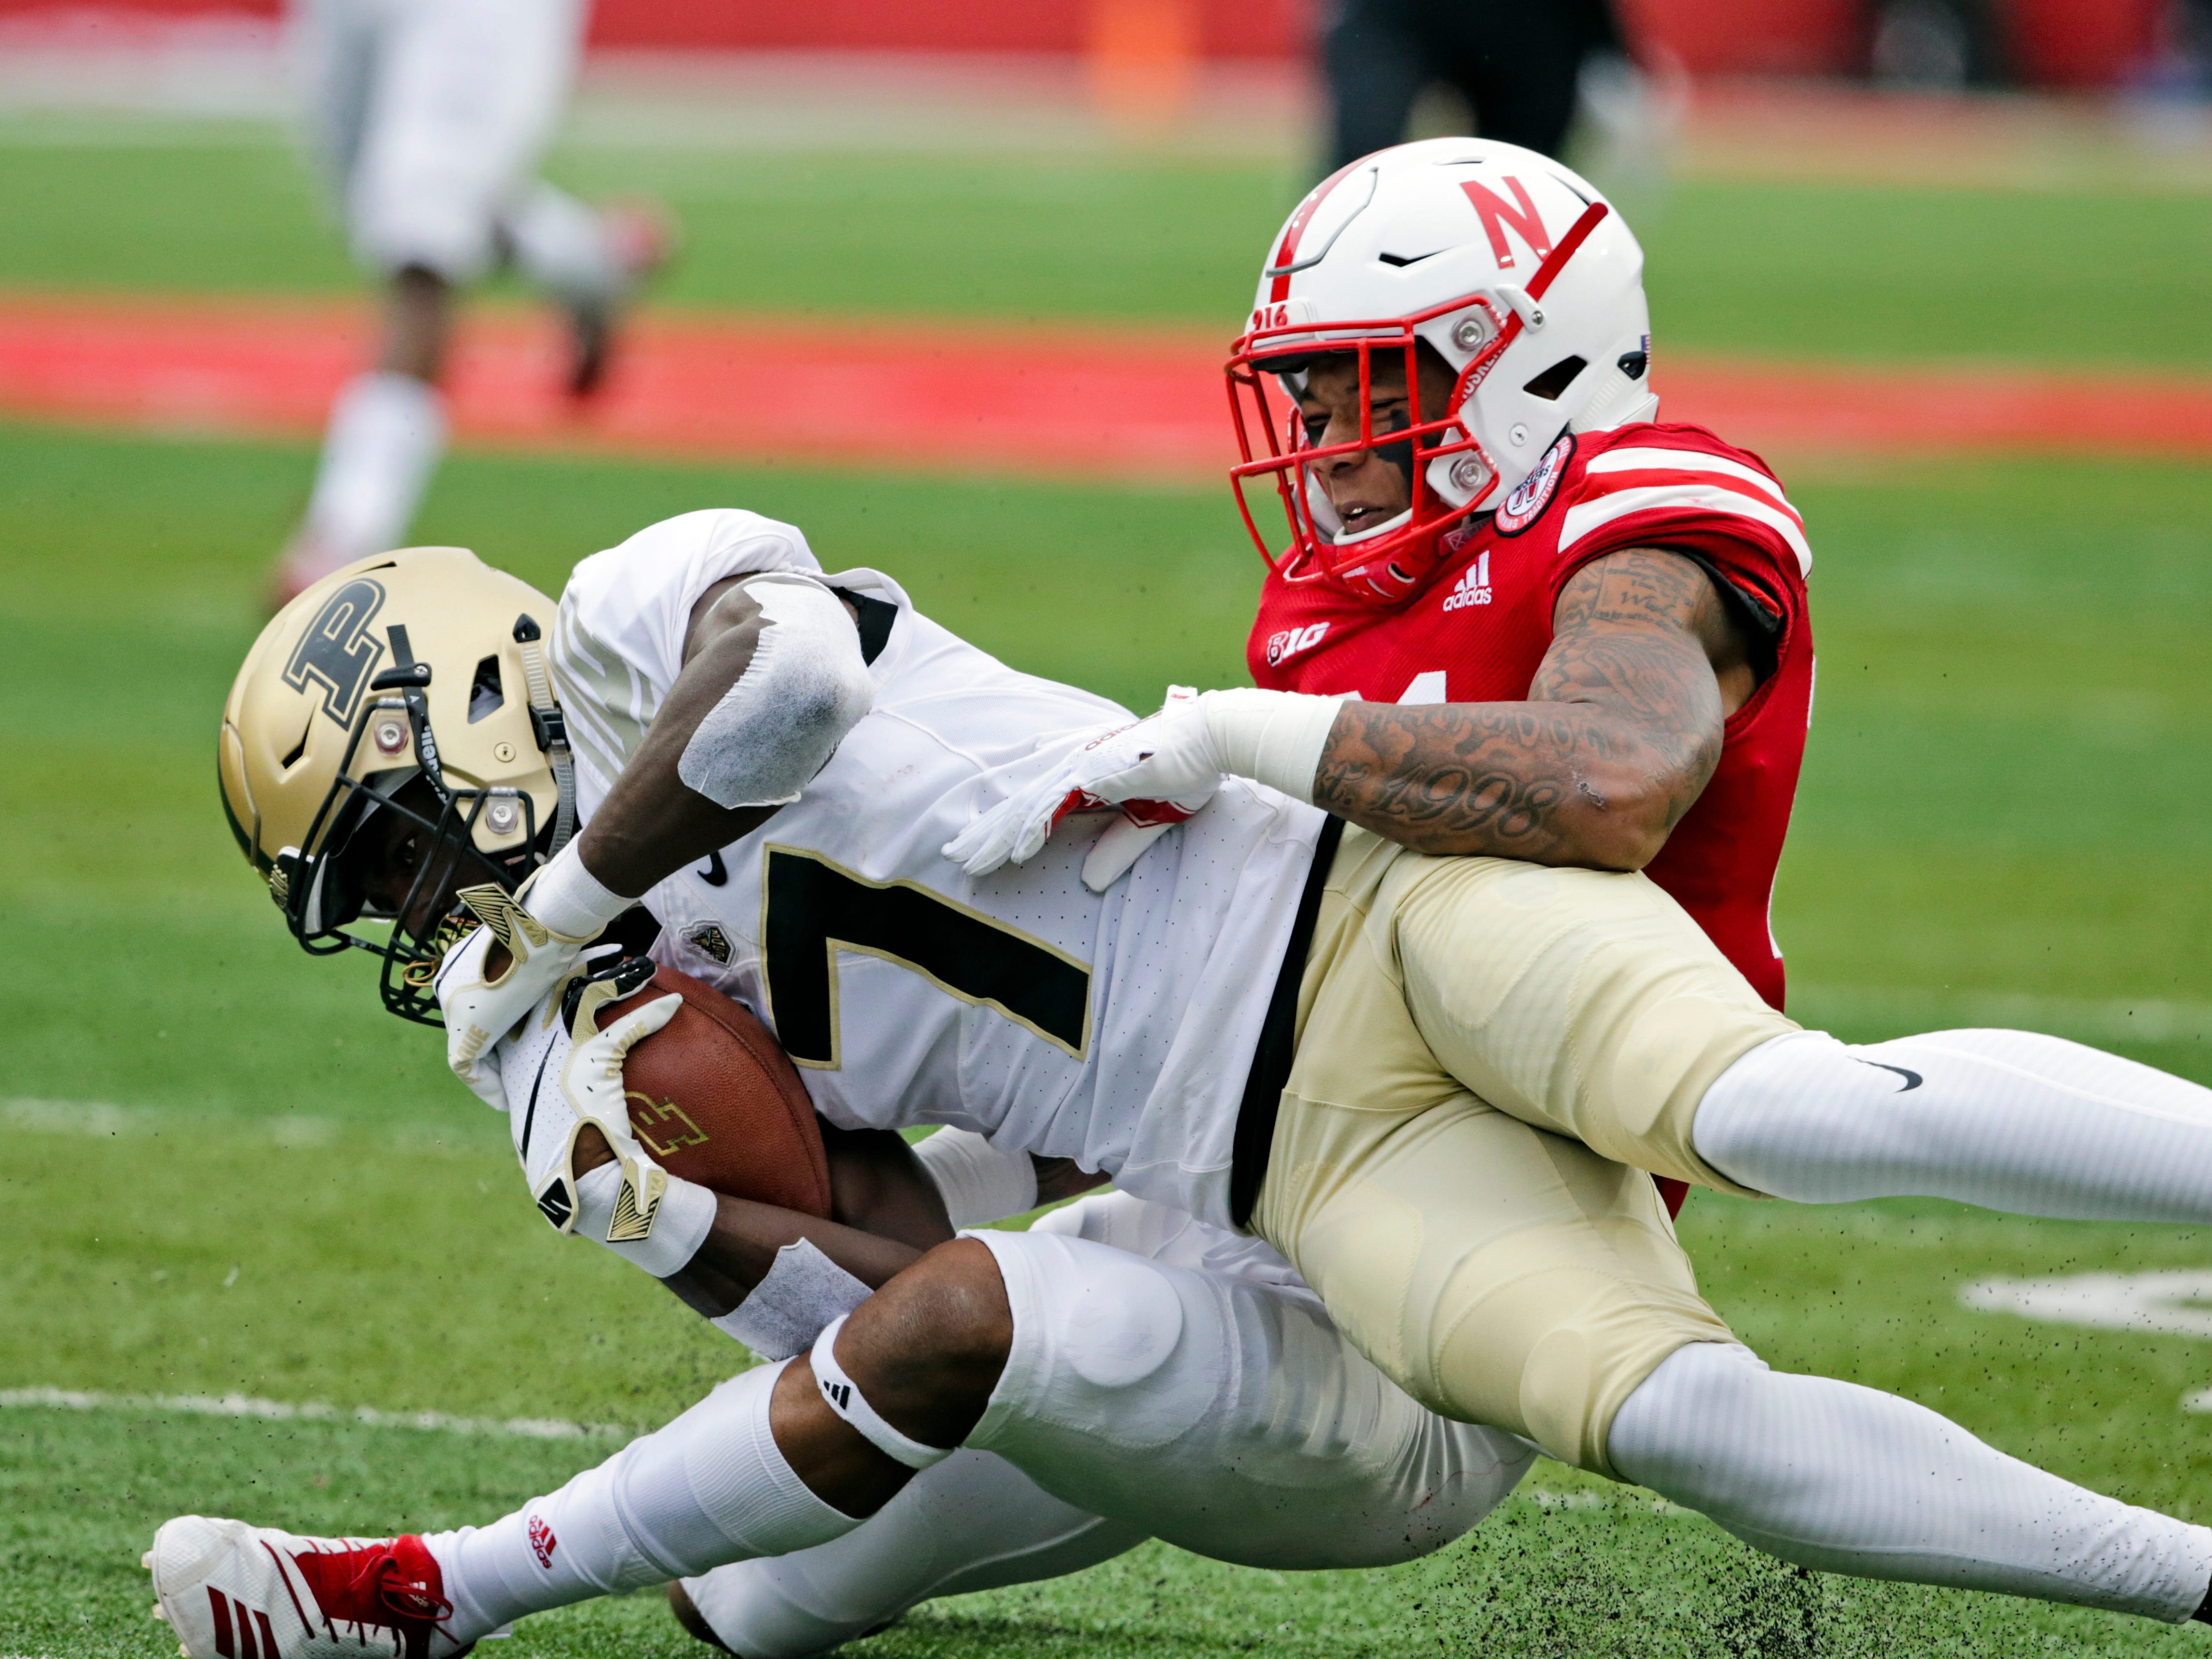 Nebraska defensive back Lamar Jackson (21) tackles Purdue wide receiver Isaac Zico (7) during the first half of an NCAA college football game in Lincoln, Neb., Saturday, Sept. 29, 2018. (AP Photo/Nati Harnik)